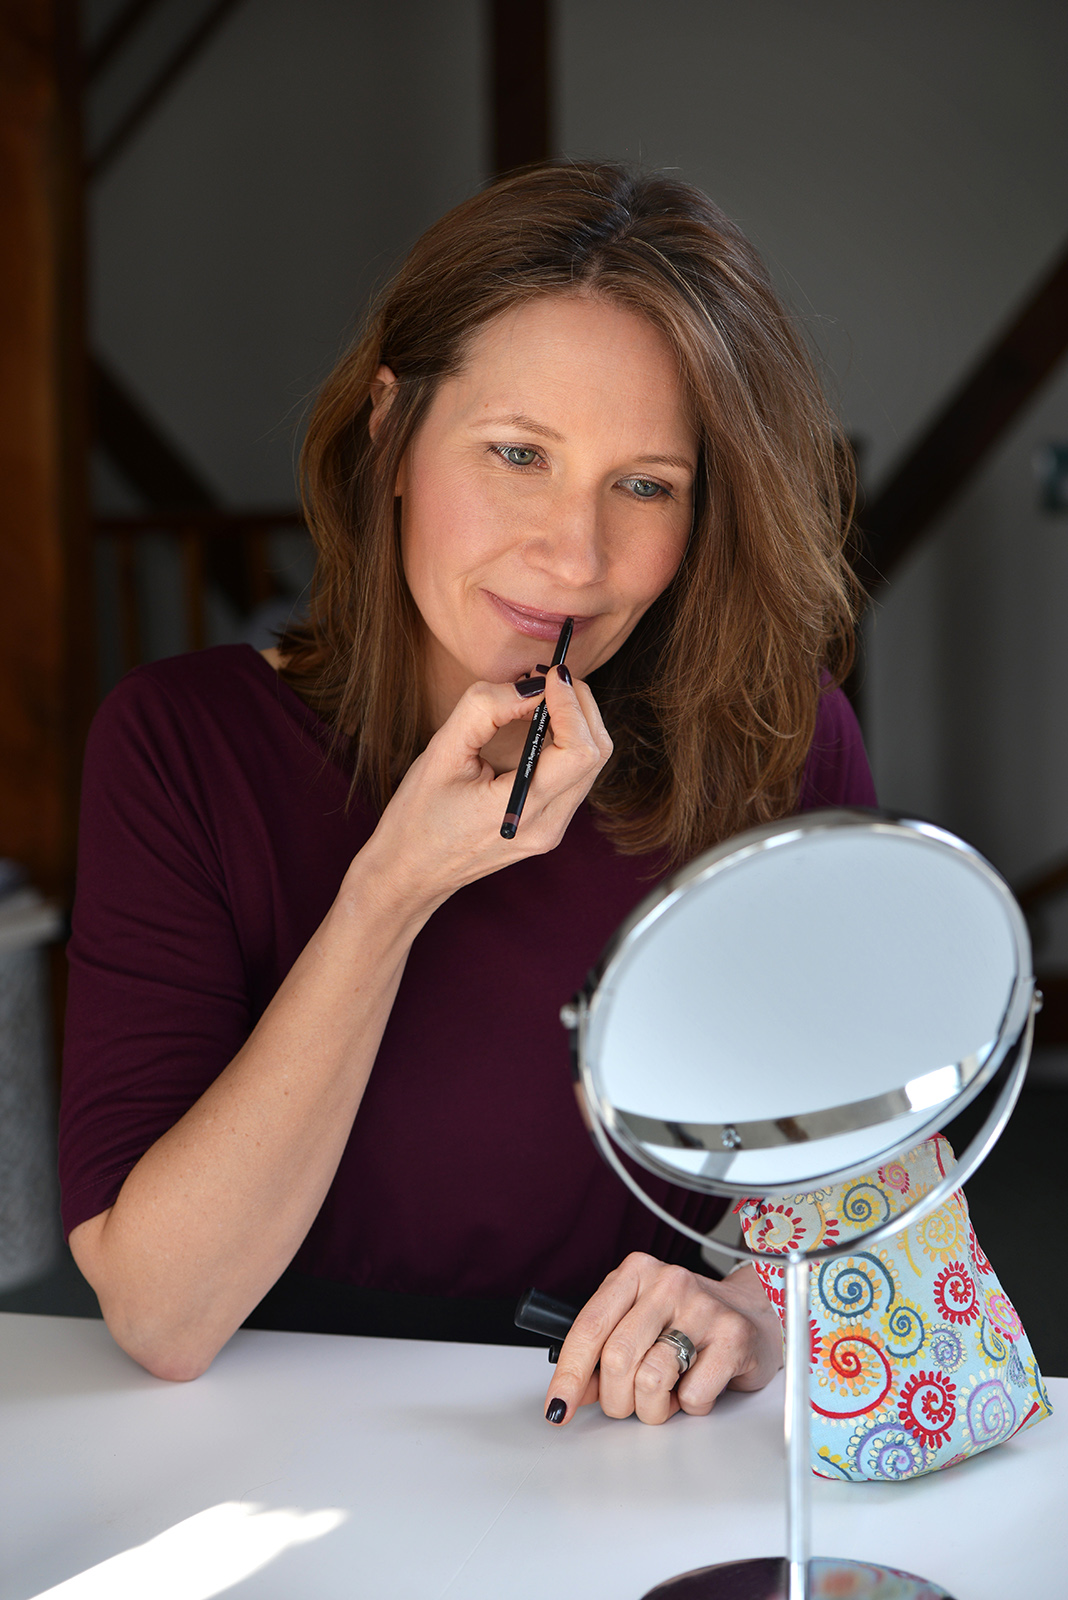 Jane Mather, make-up artist. natural enhancing make-up look